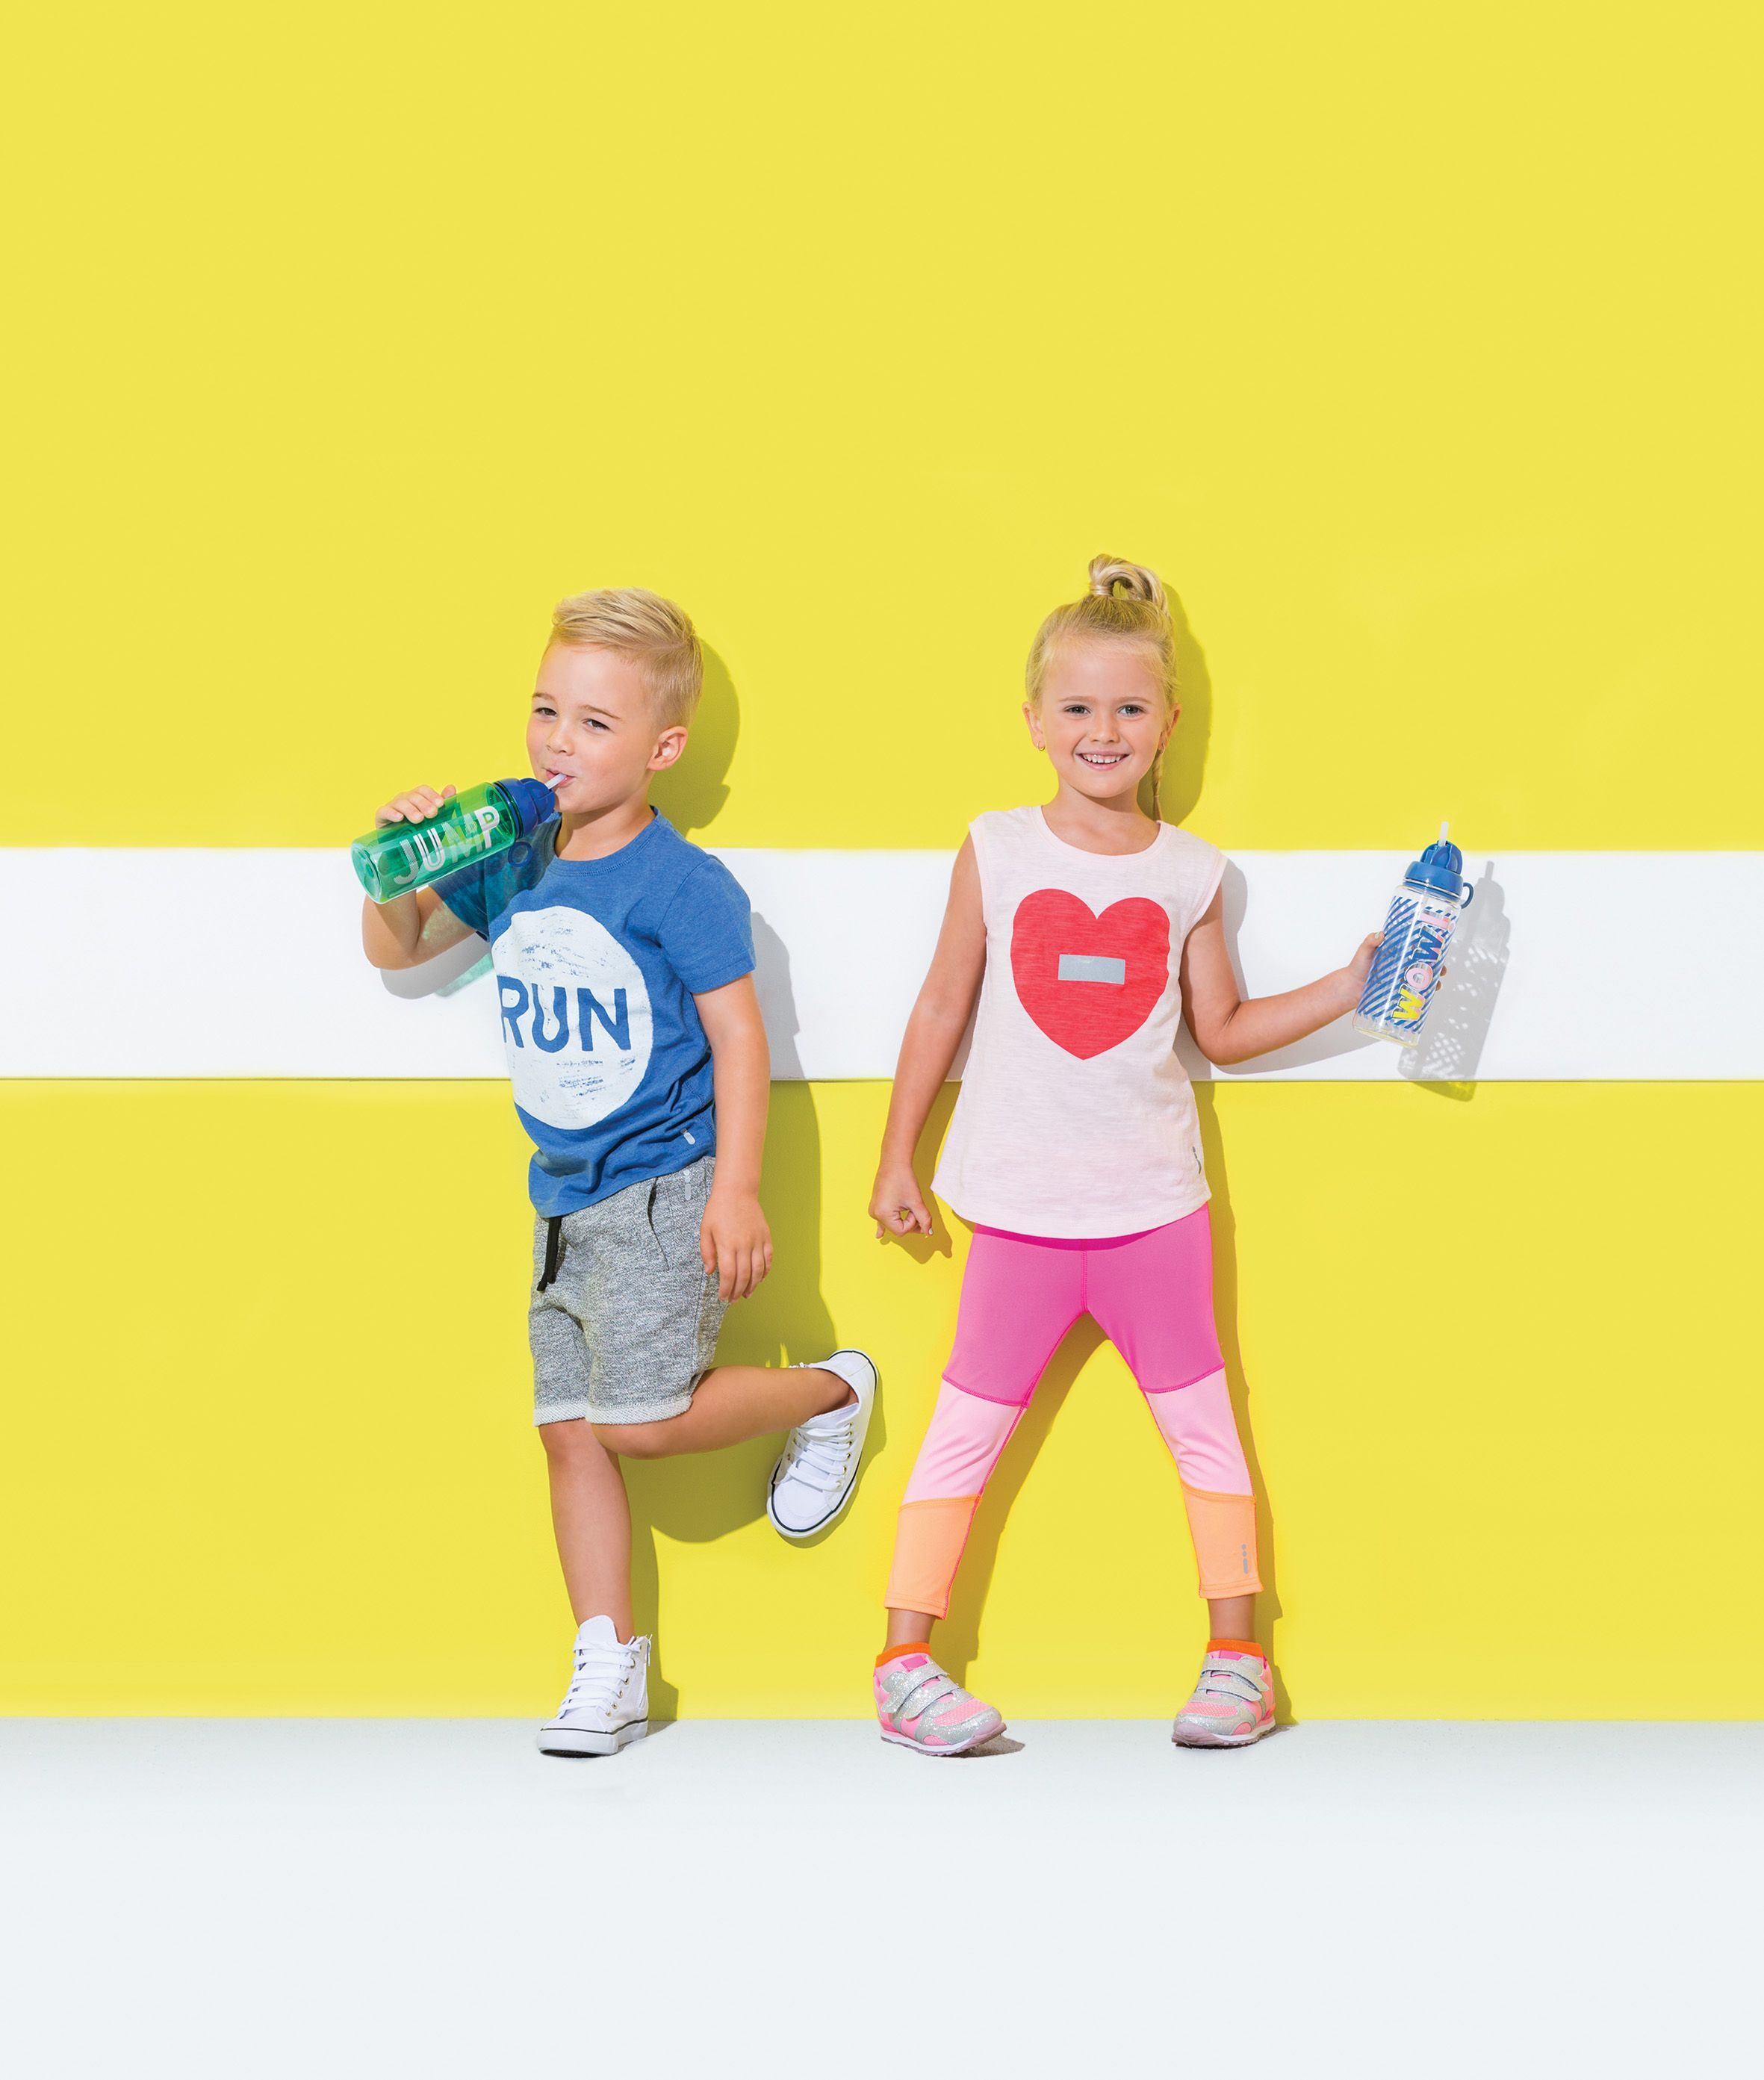 aaadde1649 Cotton On Kids Active Campaign 2016 // www.cottononkids.com | Girls ...